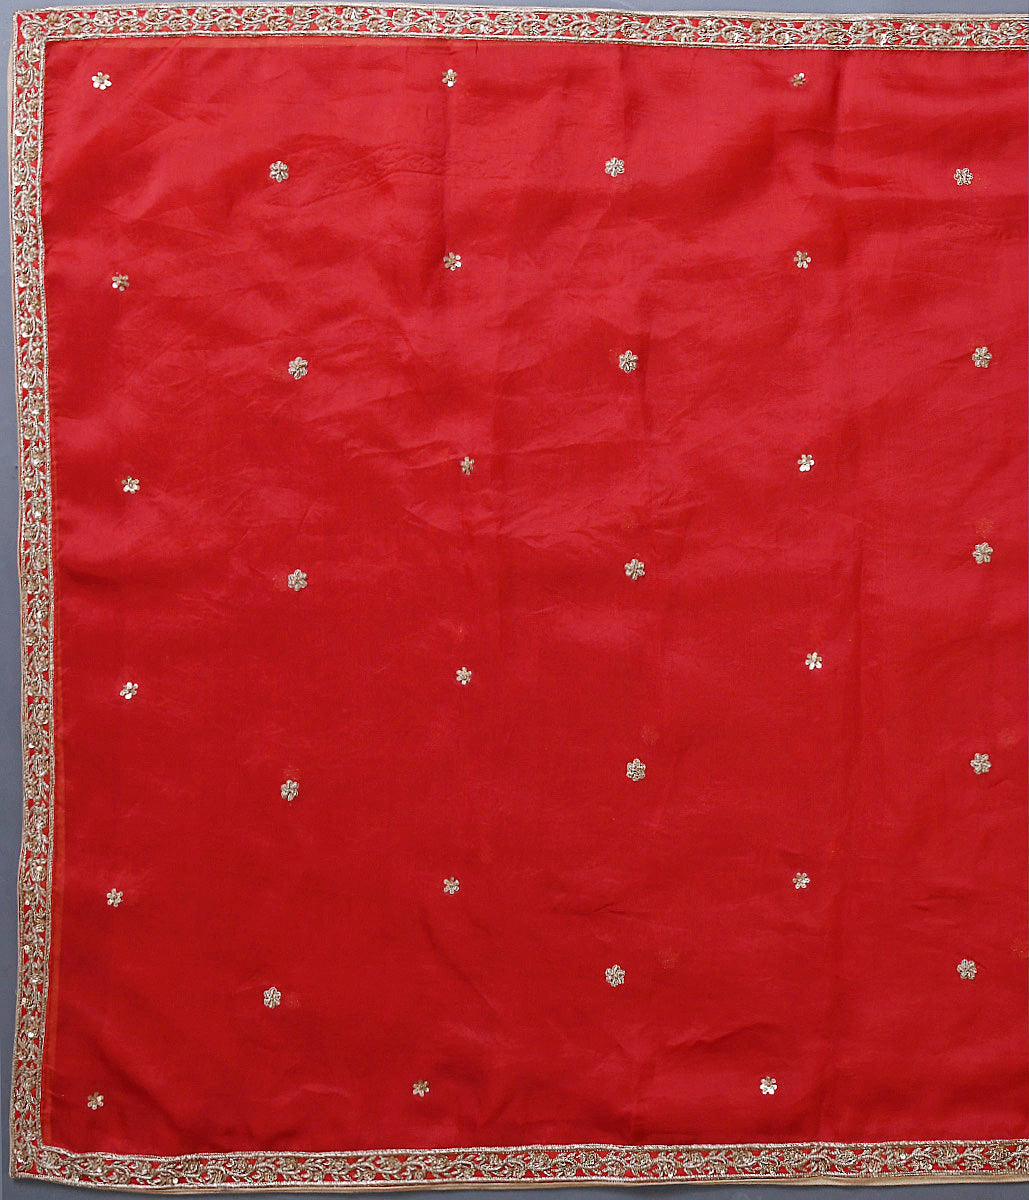 Handwoven Red Organza Dupatta with Zardozi Border